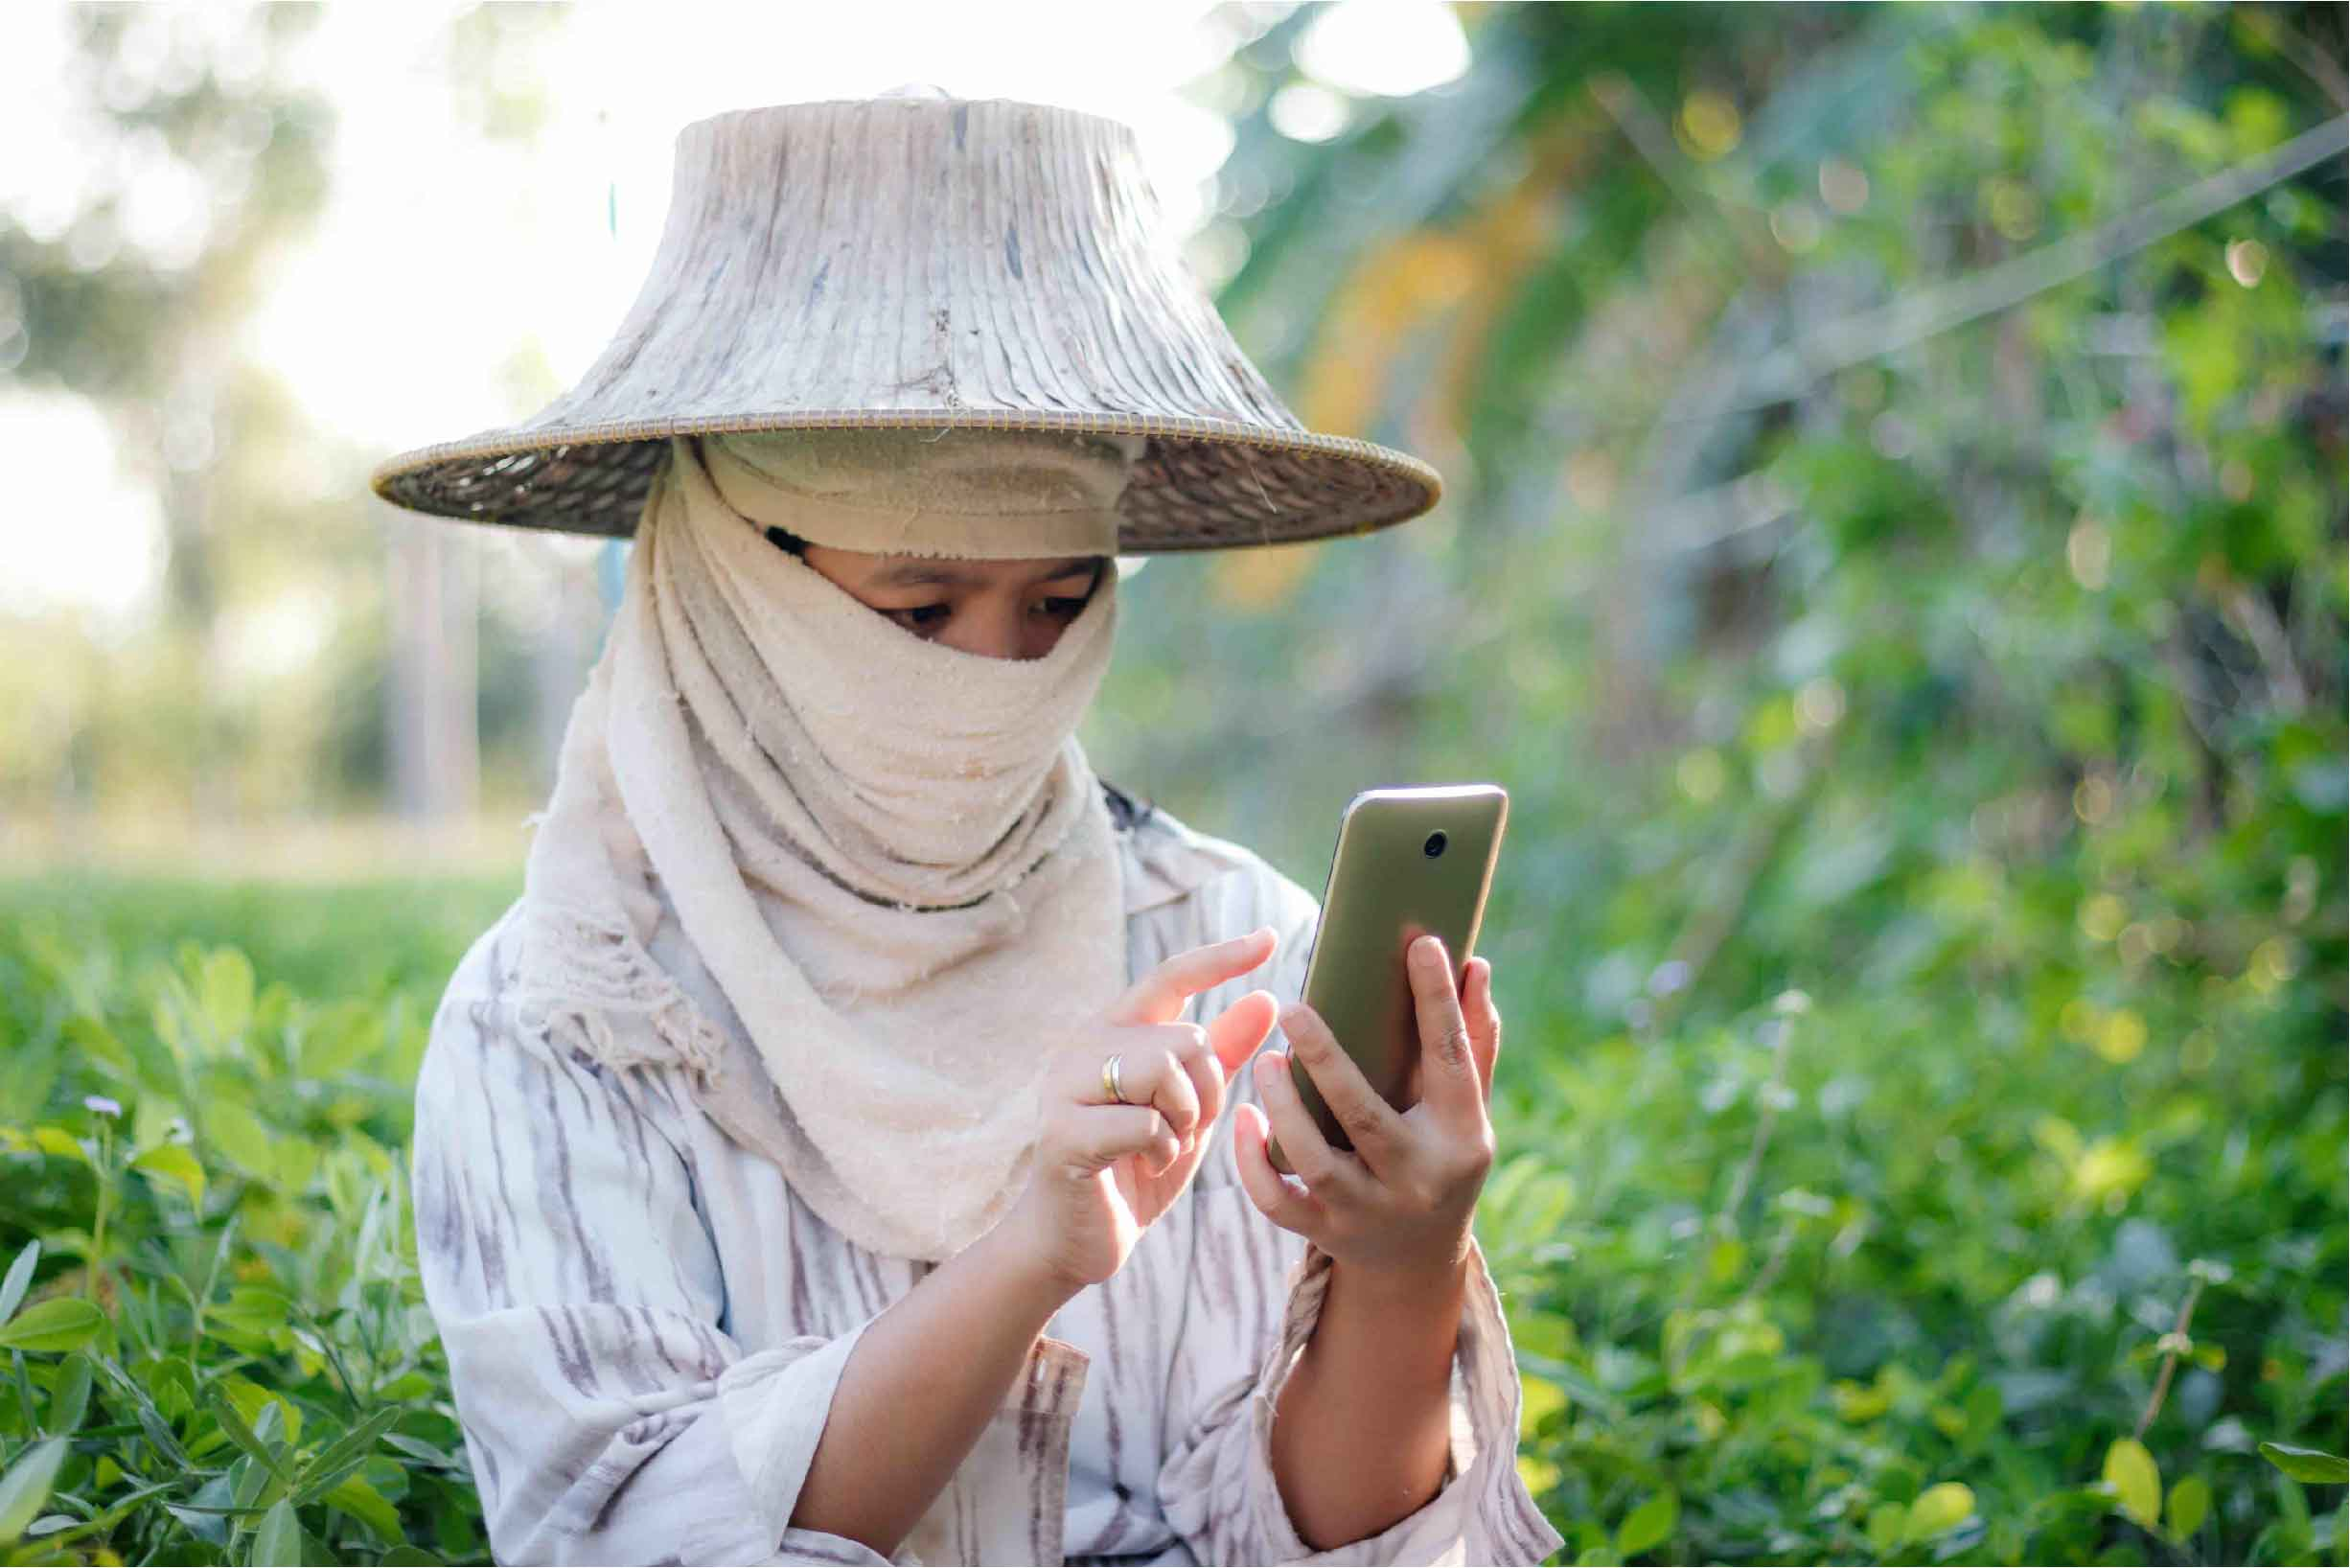 Making Smartphones Relevant for the World's Poorest Farmers: An Interview with David Davies